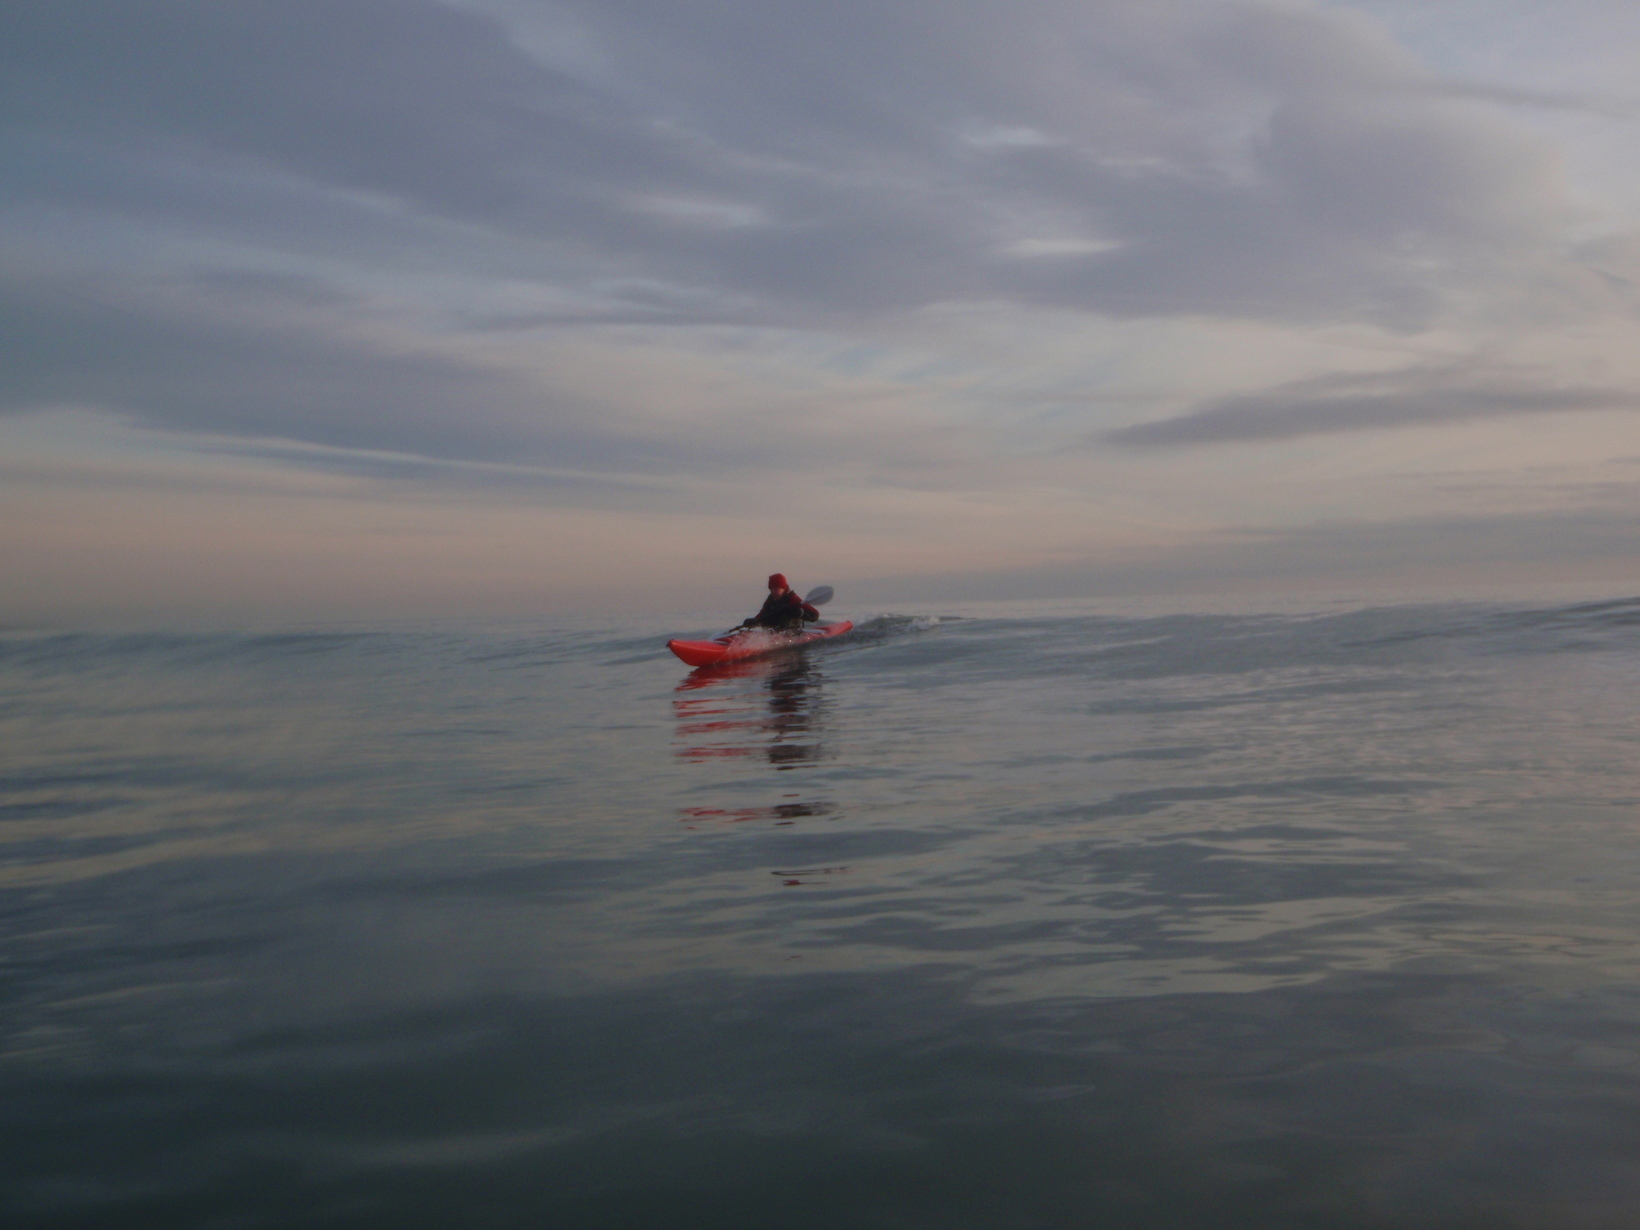 Surfing a sea kayak on a 3 star sea kayak course